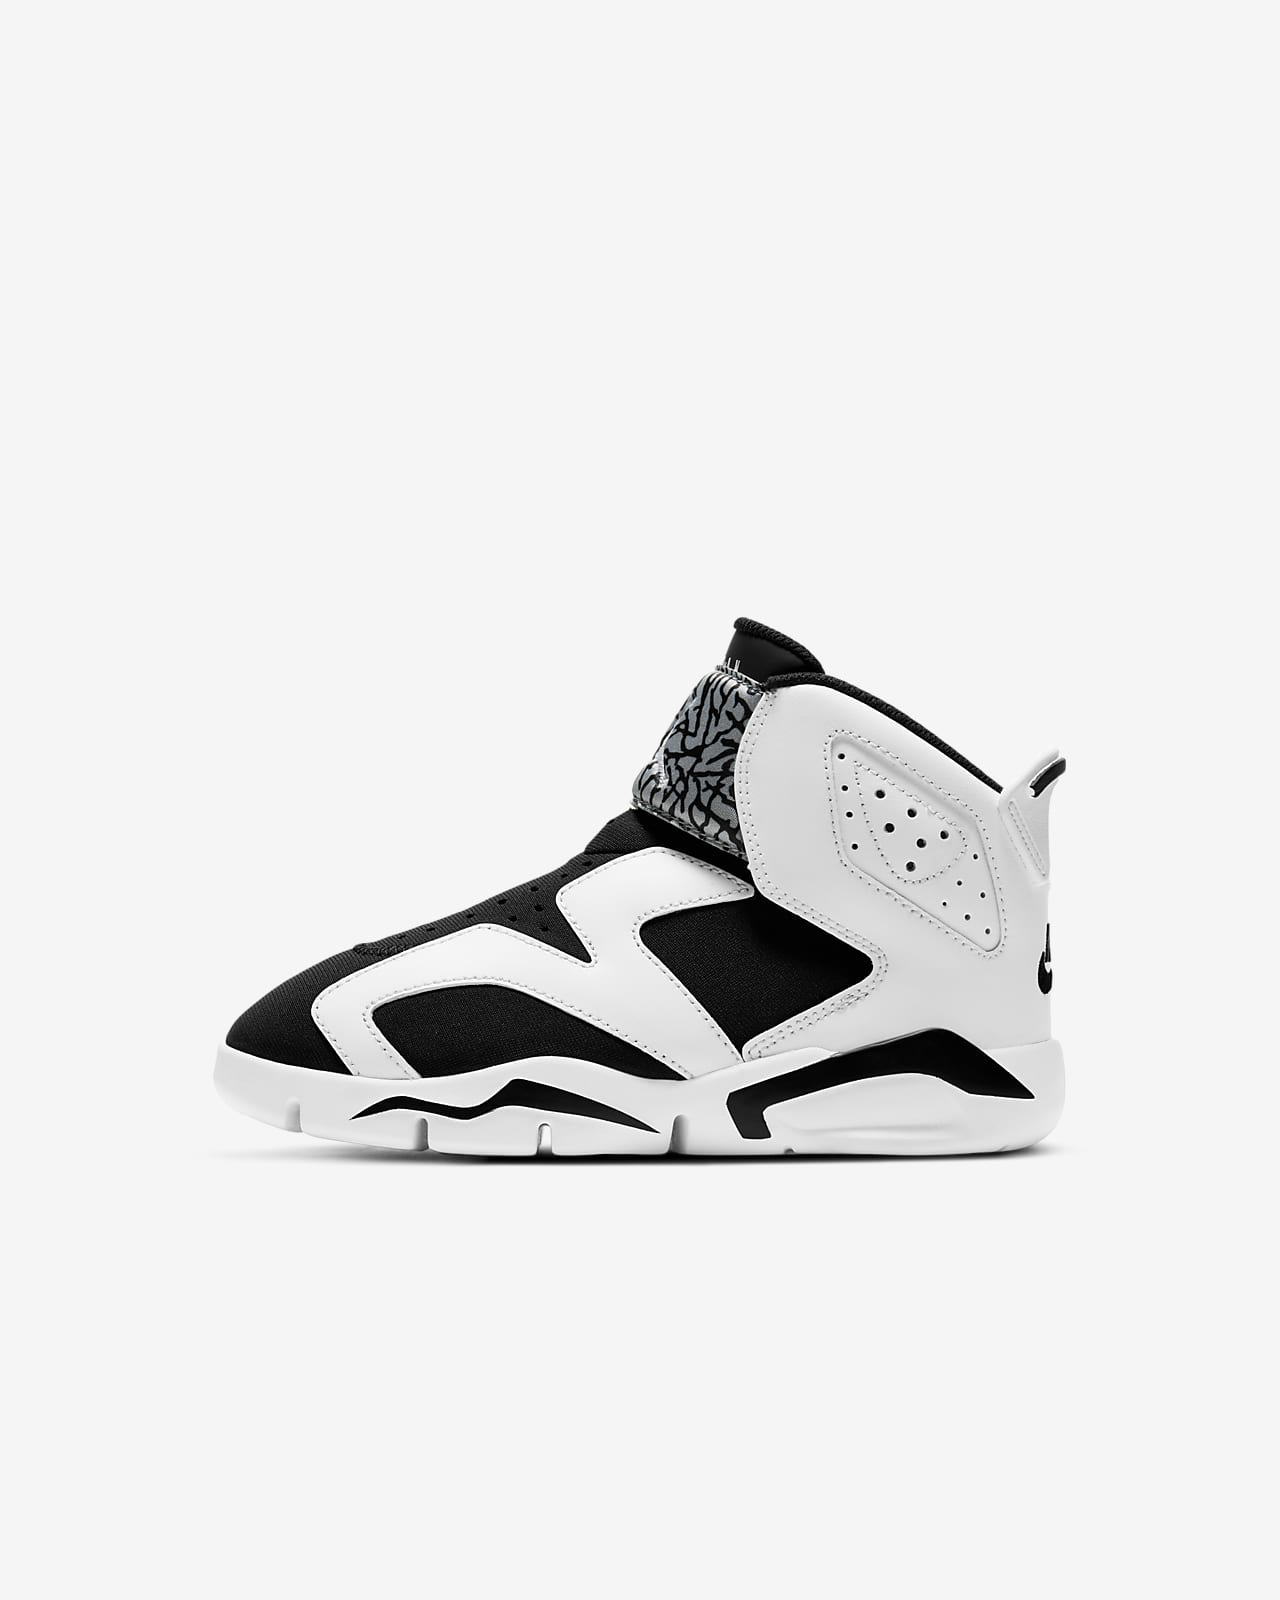 Jordan 6 Retro Little Flex Little Kids' Shoe